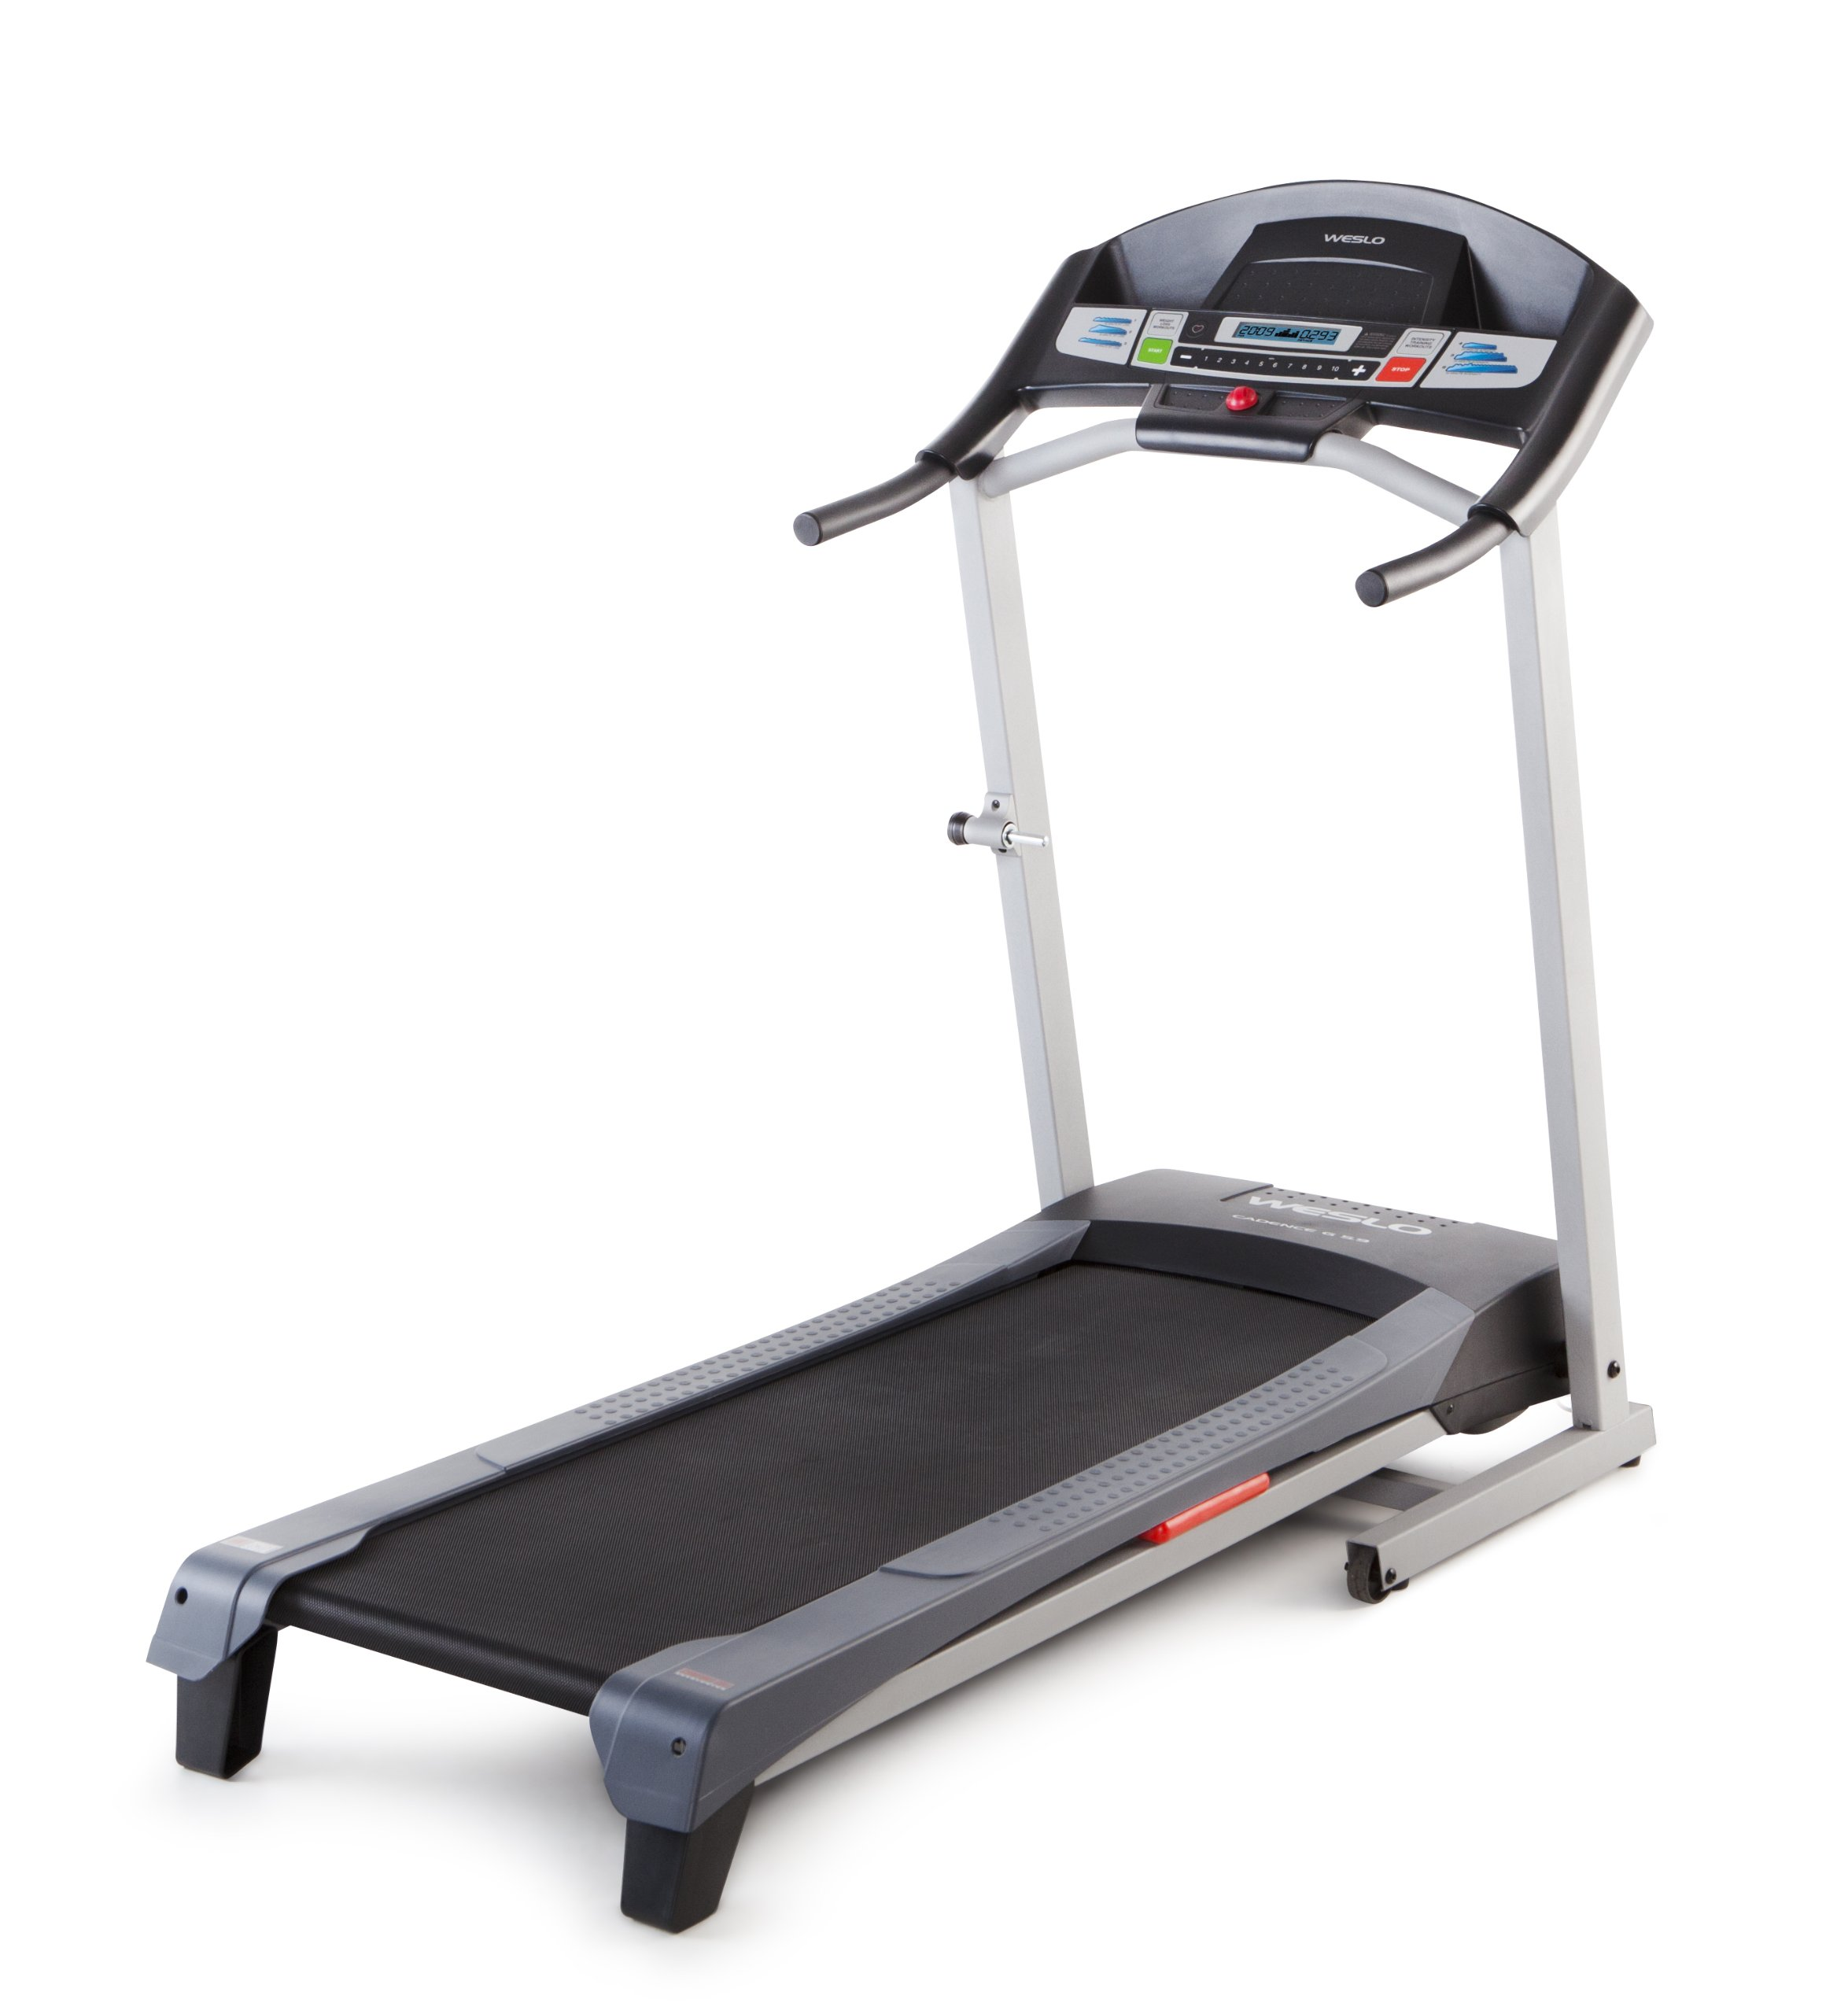 Amazon - Weslo Cadence G 5.9 Treadmill Series